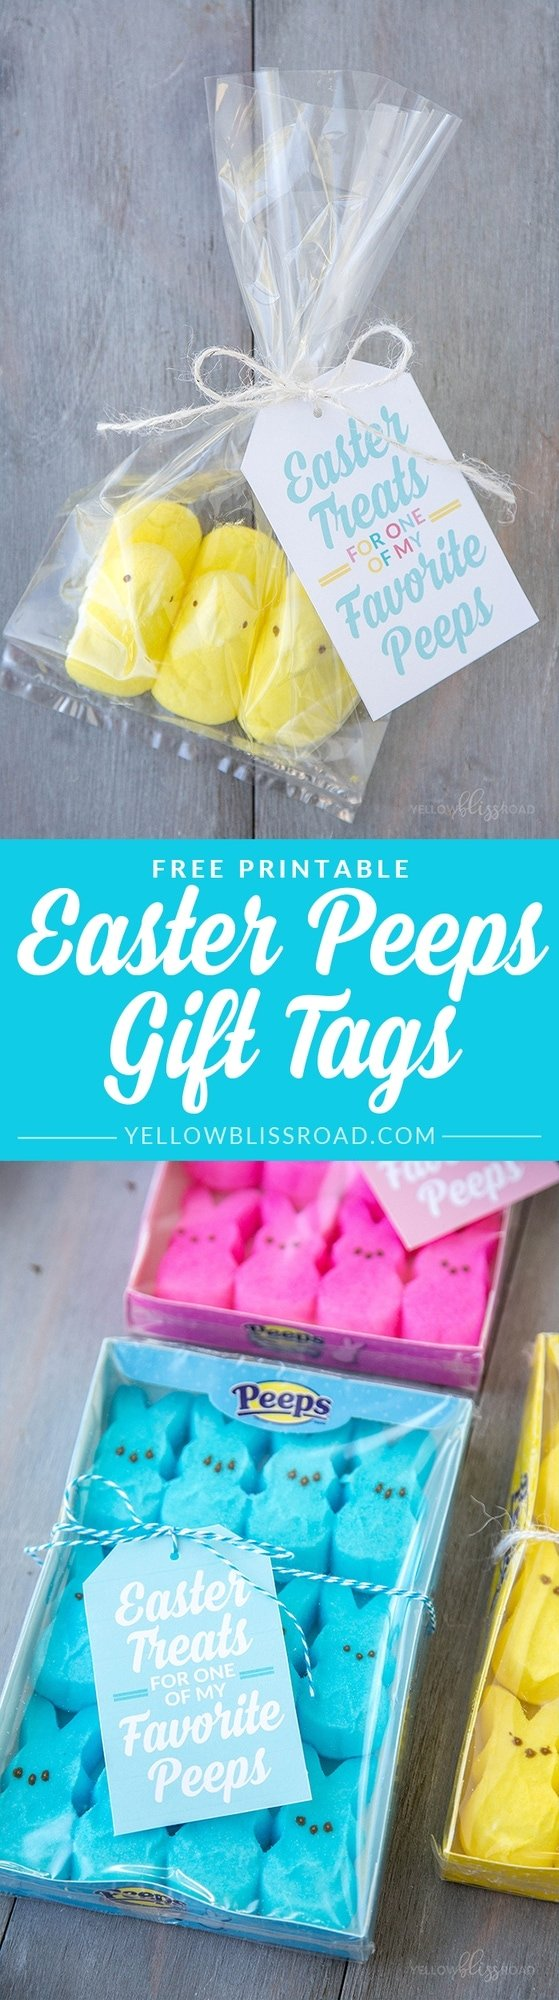 Free Printable Peeps Gifts Tags for Easter - Cute classroom, friends or neighbor Easter gifts